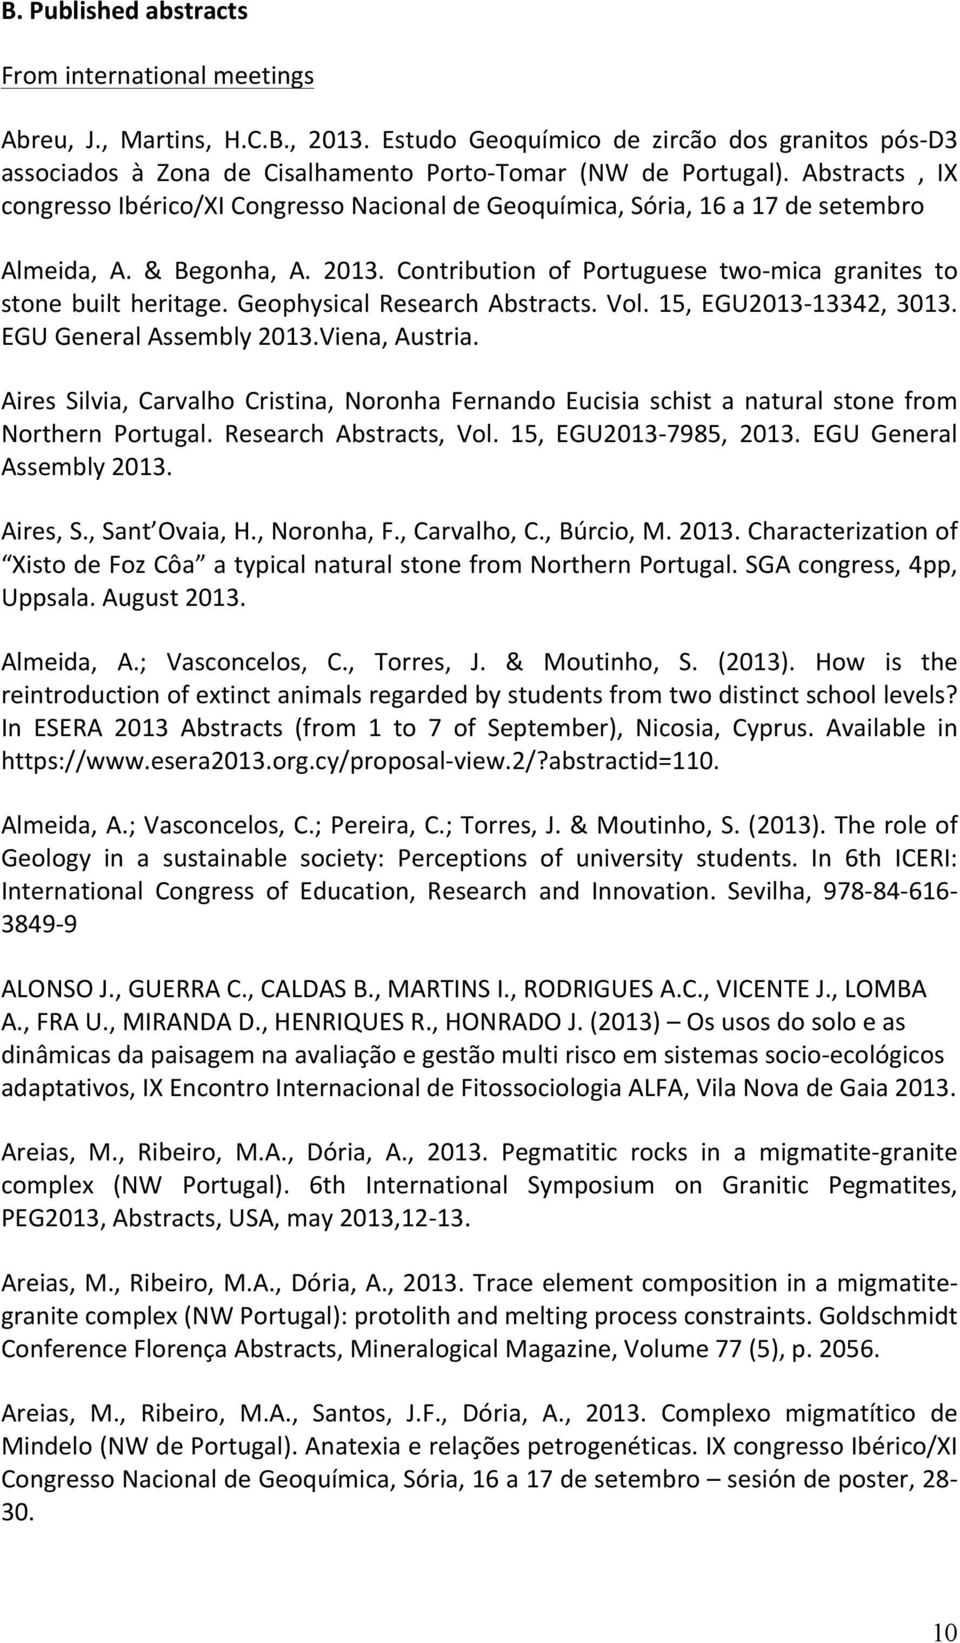 Geophysical Research Abstracts. Vol. 15, EGU2013-13342, 3013. EGU General Assembly 2013.Viena, Austria.